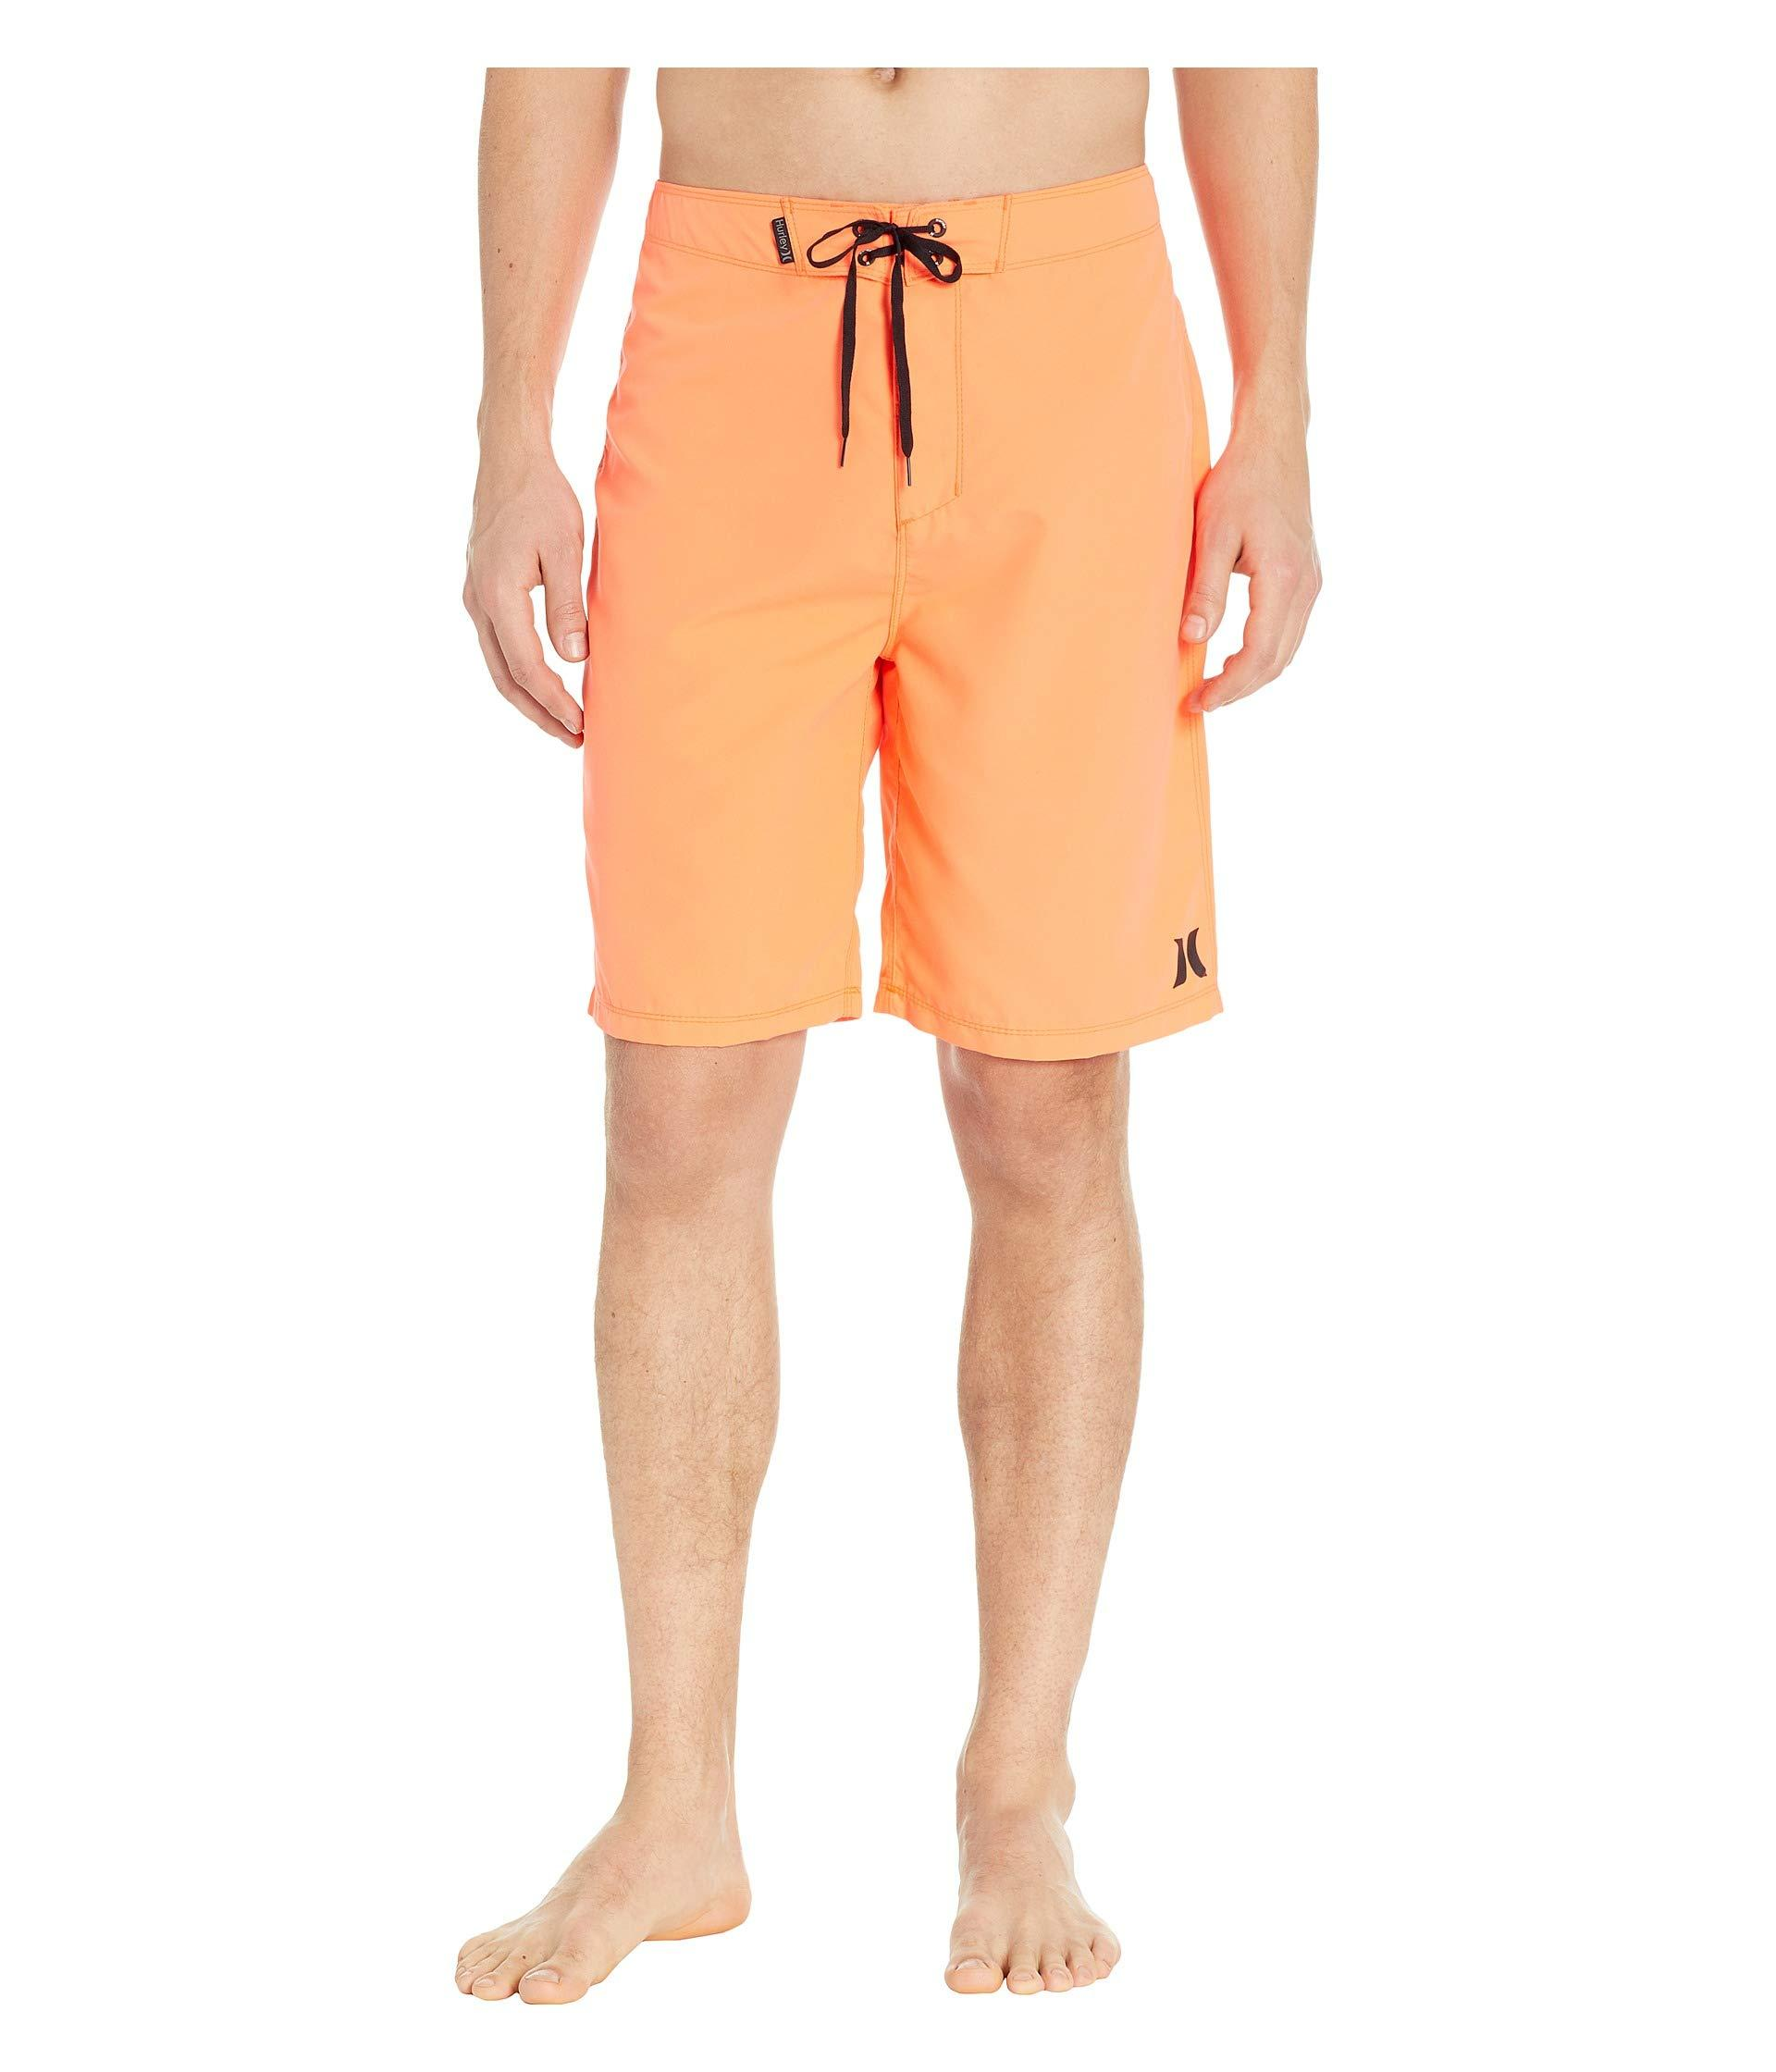 967eb58636 Lyst - Hurley One Only 2.0 21 Boardshorts (celestial Teal) Men's ...